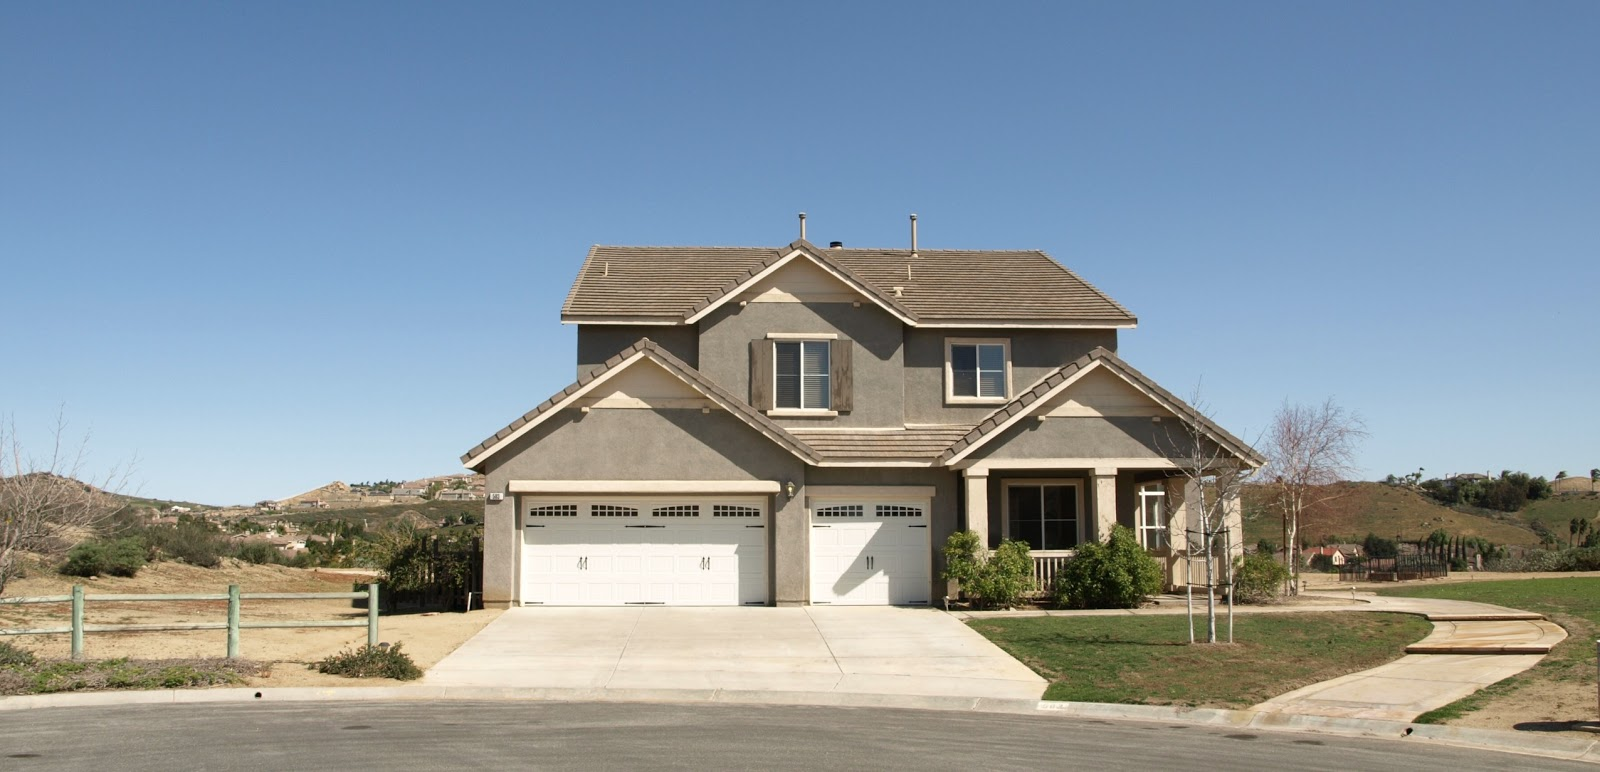 503 CARSON CITY WAY, NORCO 92860 SOLD